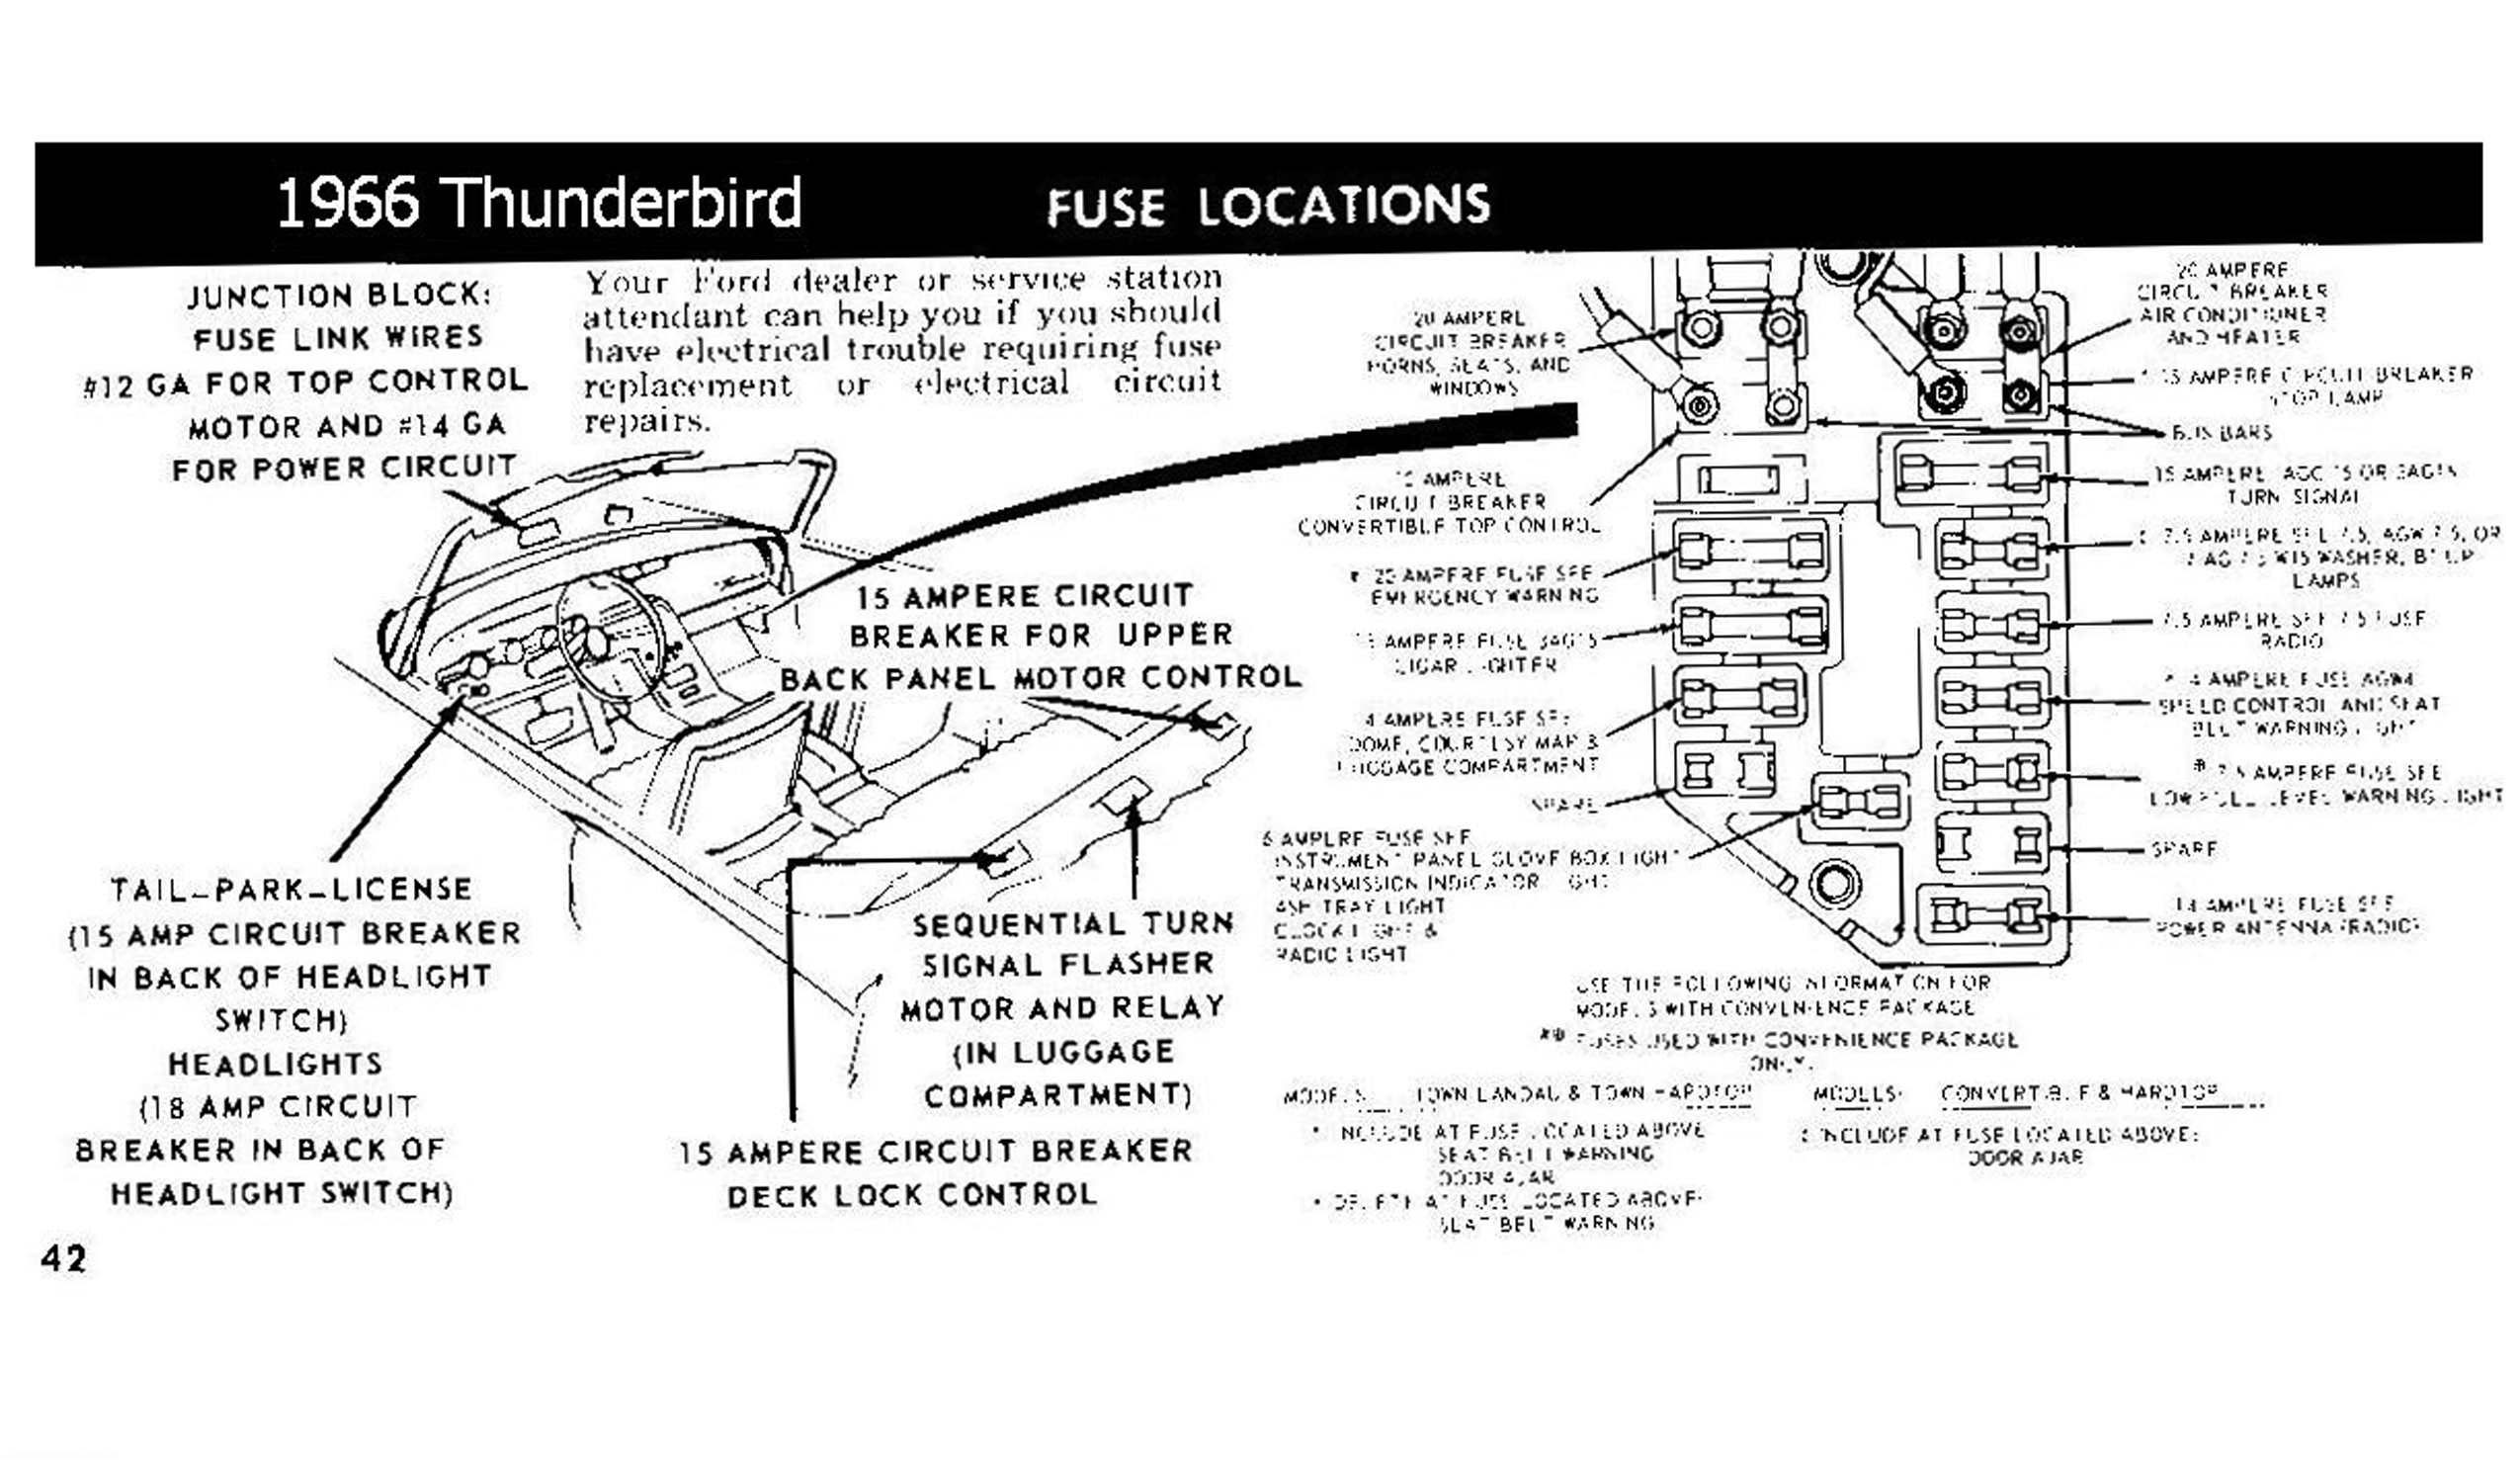 65 Ford Thunderbird Wiring Diagram Library 95 Taurus Diagrams 1963 V8 Fairlane Right 17